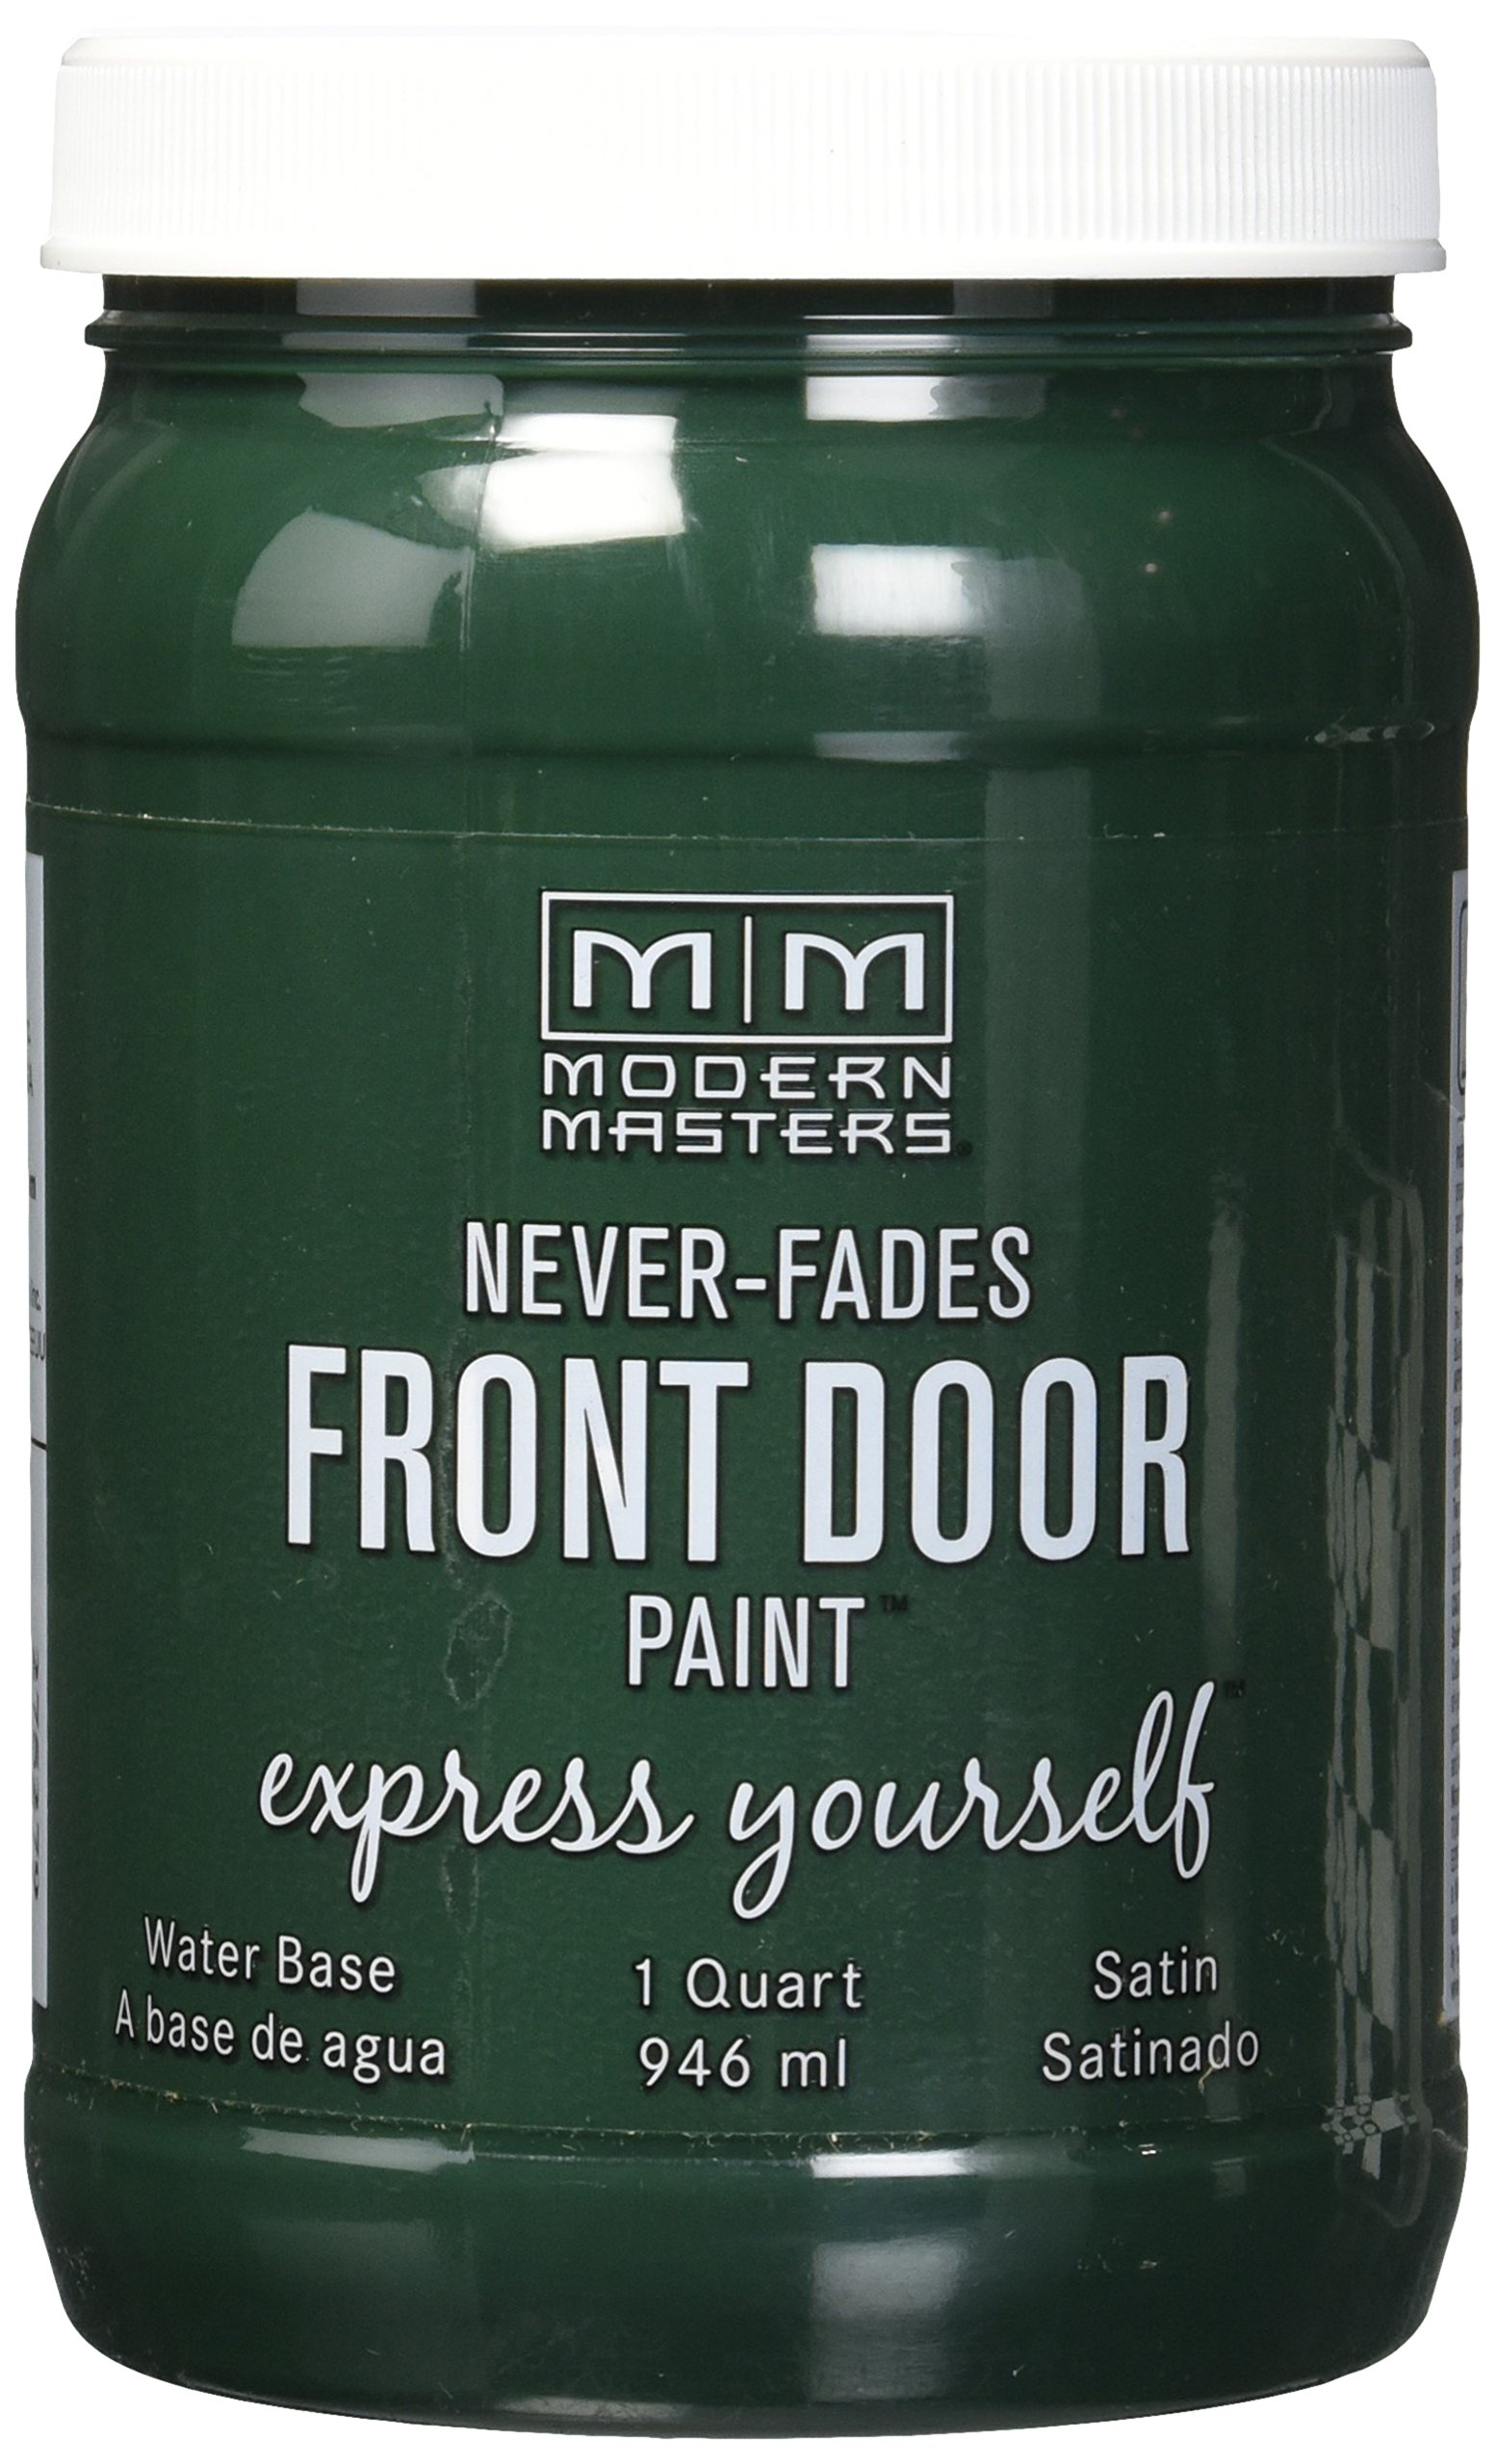 Modern Masters 275279 Satin Front Door Paint, 1 quart, Successful